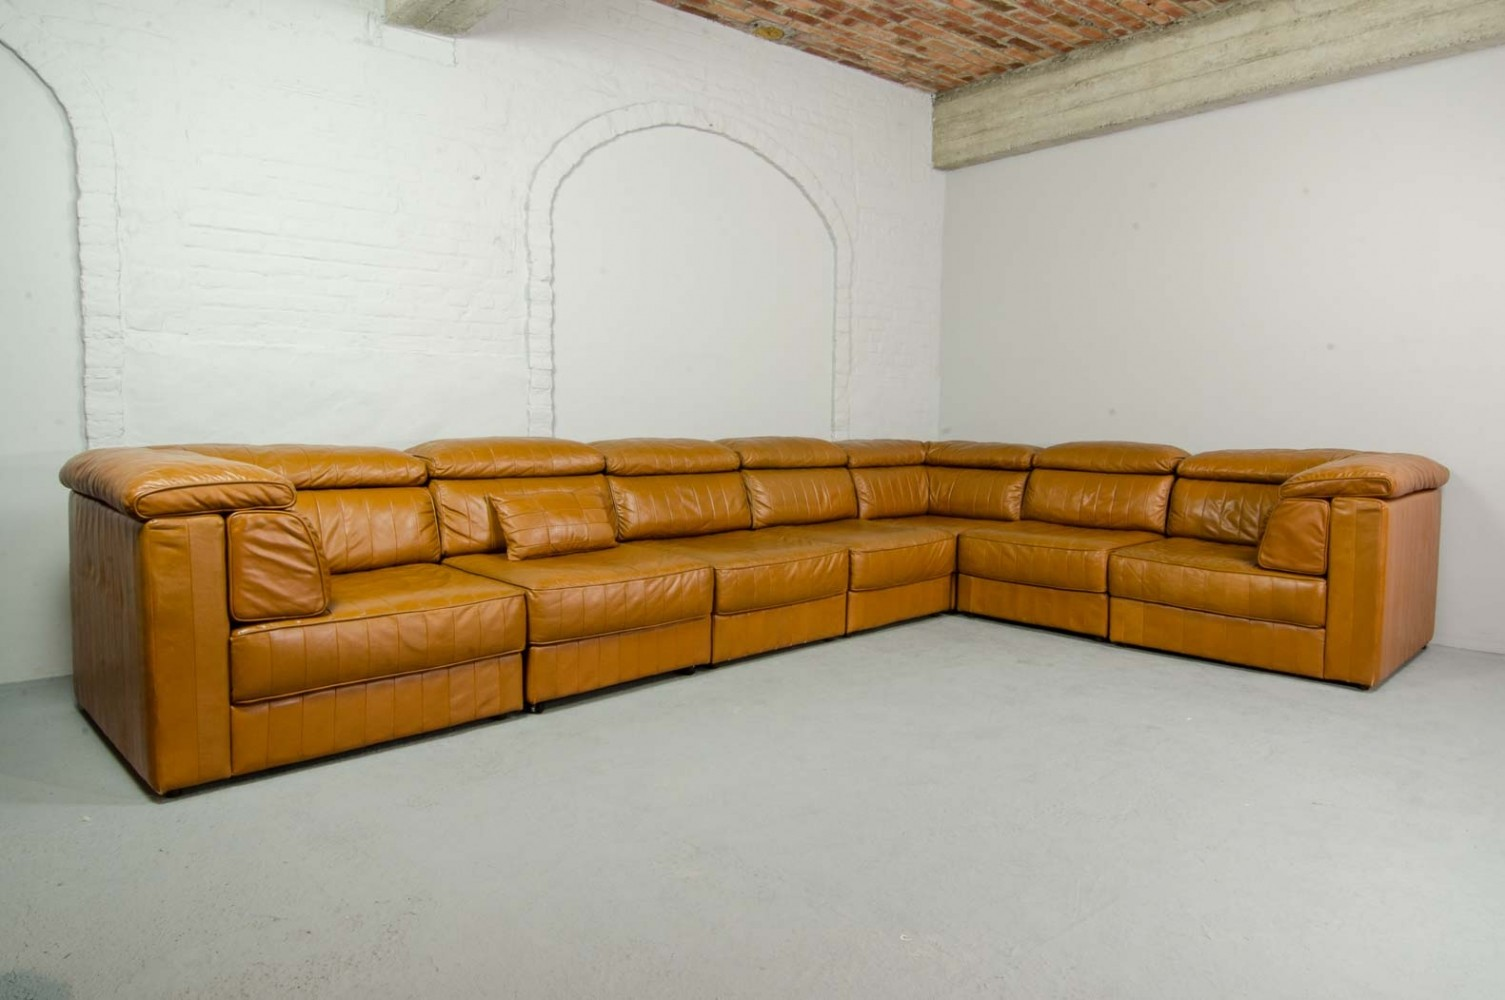 7 elements modular patchwork sofa by laauser in cognac leather 7 elements modular patchwork sofa by laauser in cognac leather 1970s parisarafo Image collections